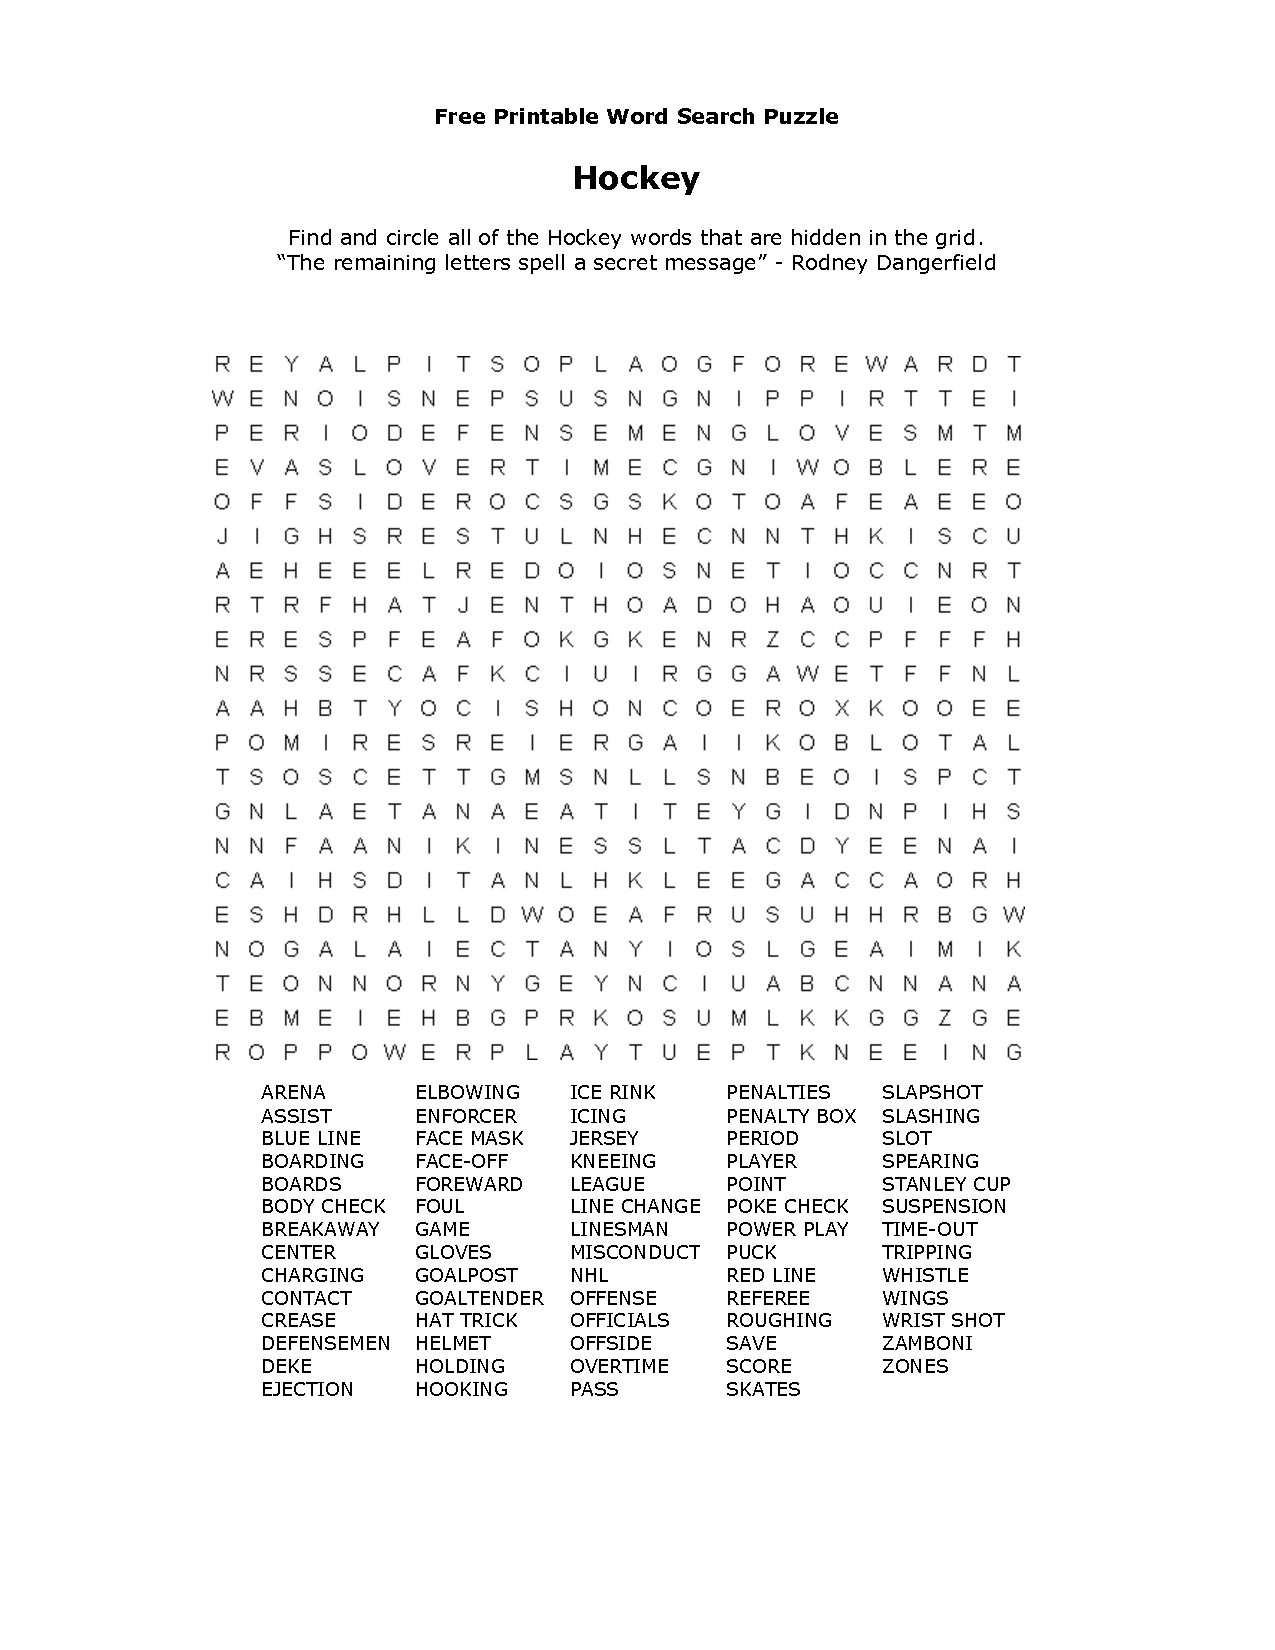 Free Printable Word Searches | طلال | Free Printable Word Searches - Printable Word Puzzles Free